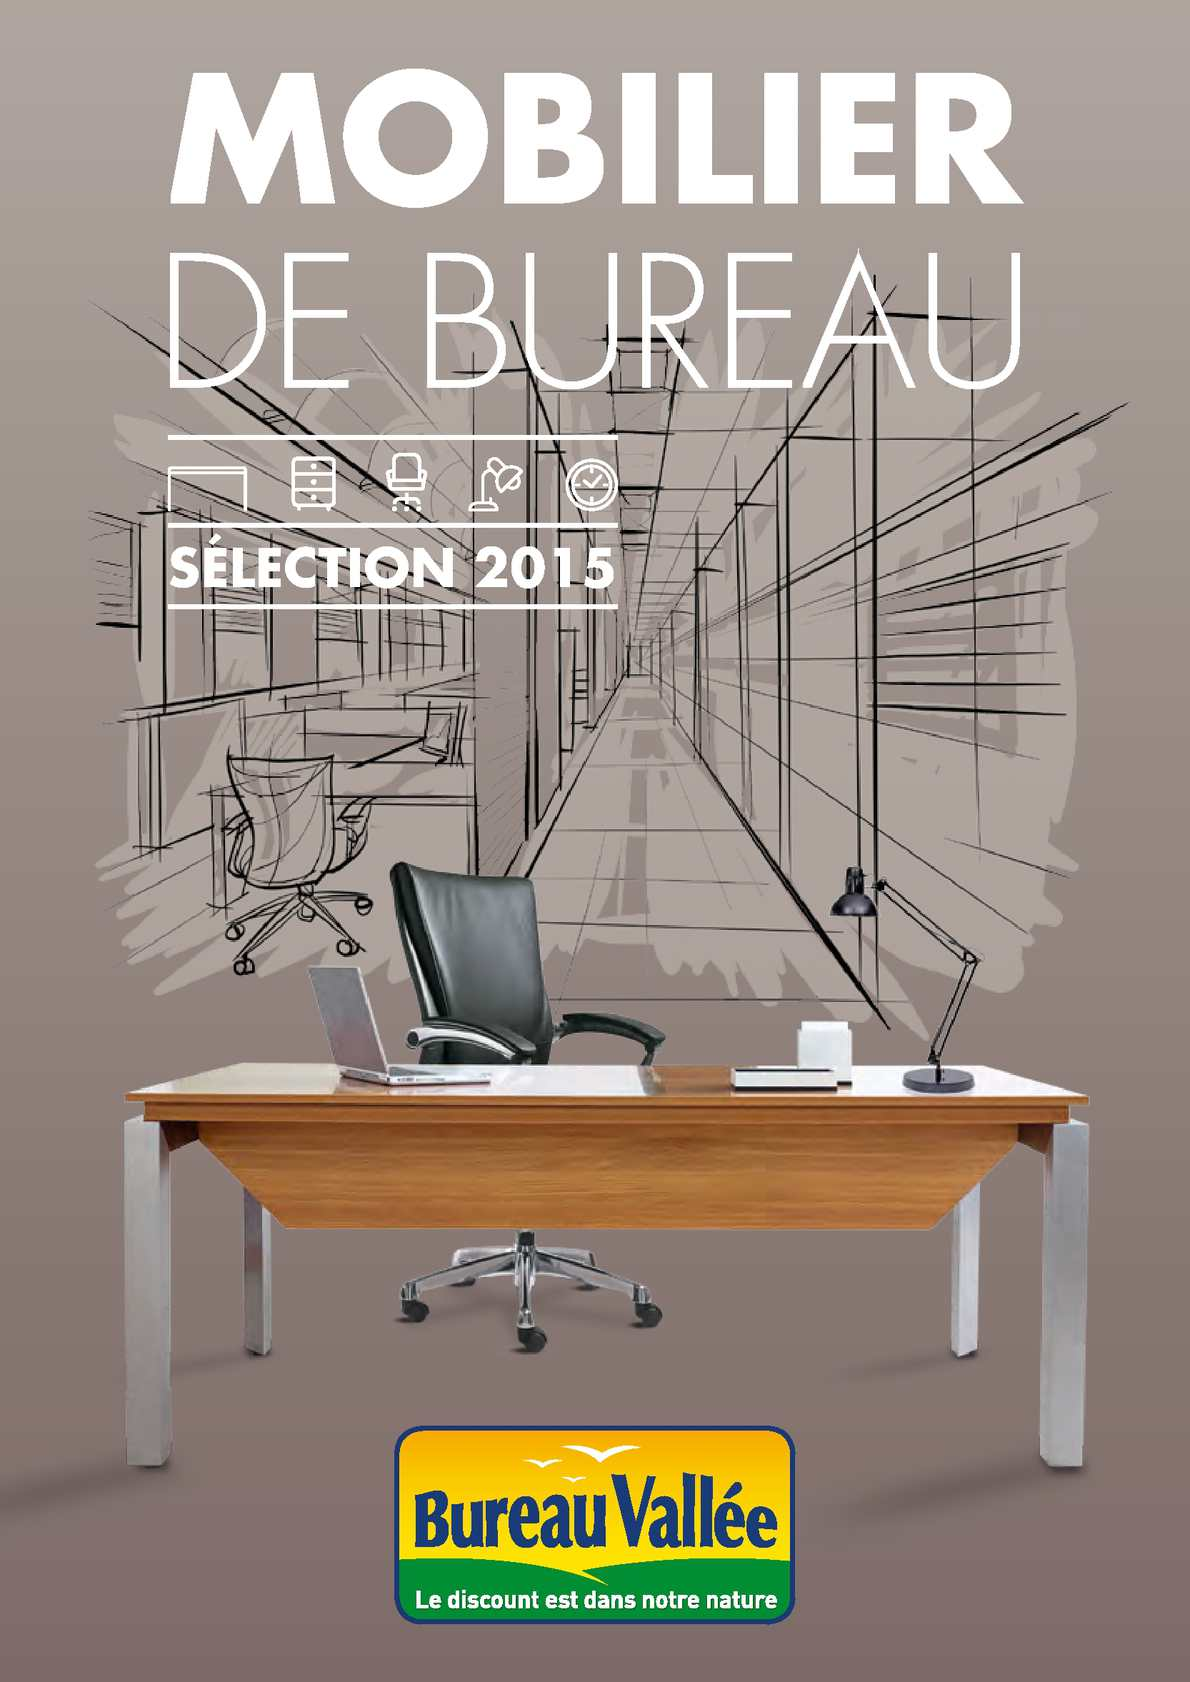 Calam o catalogue mobilier bureau vall e 2015 for Catalogue mobilier bureau